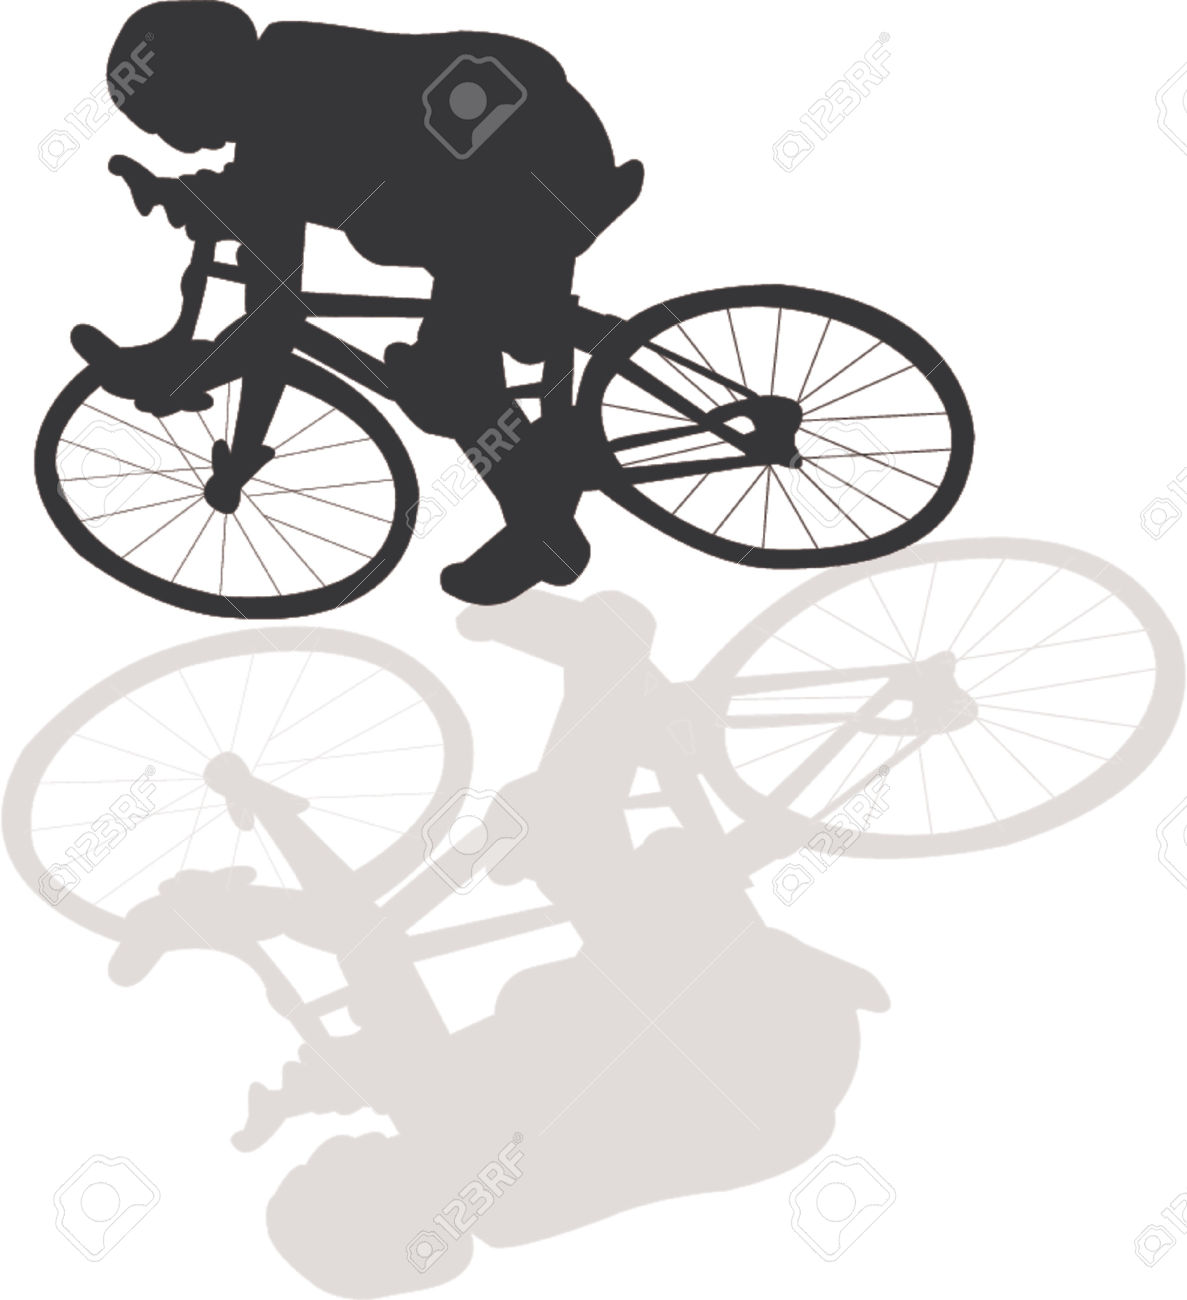 Bicycle Vector Silhouette With Shadow Royalty Free Cliparts.